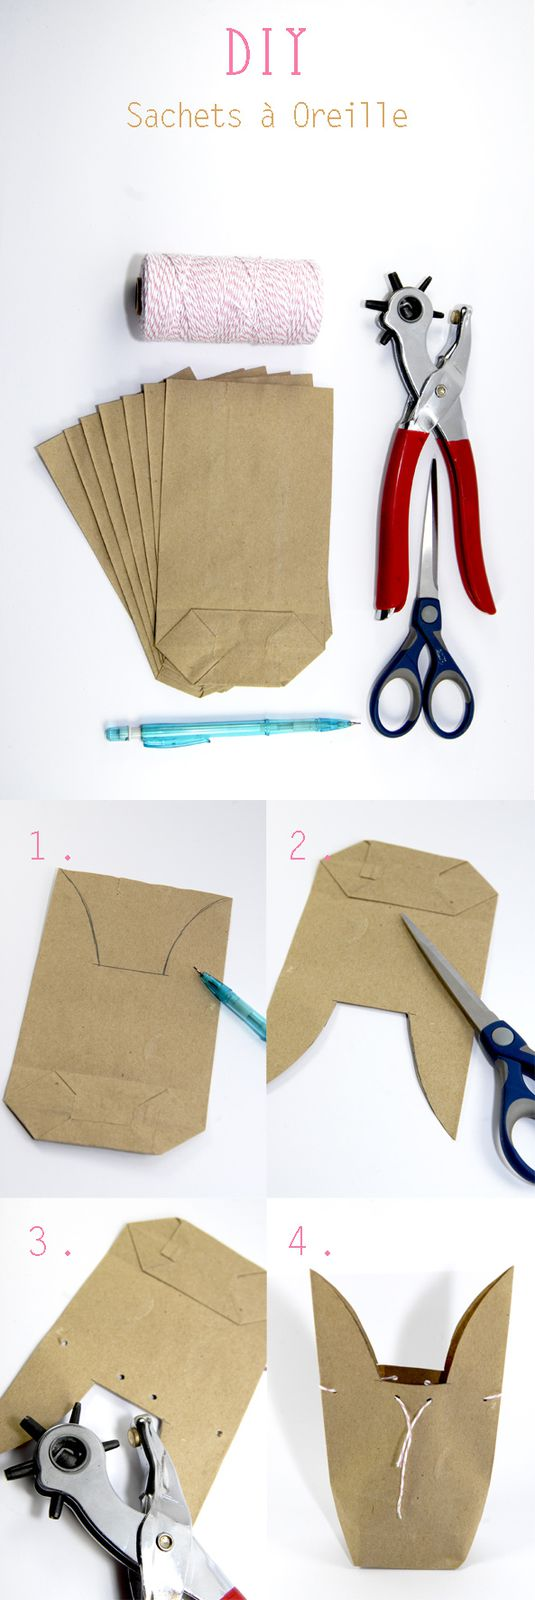 DIY-easter-bunny-bag-tutorial.jpg